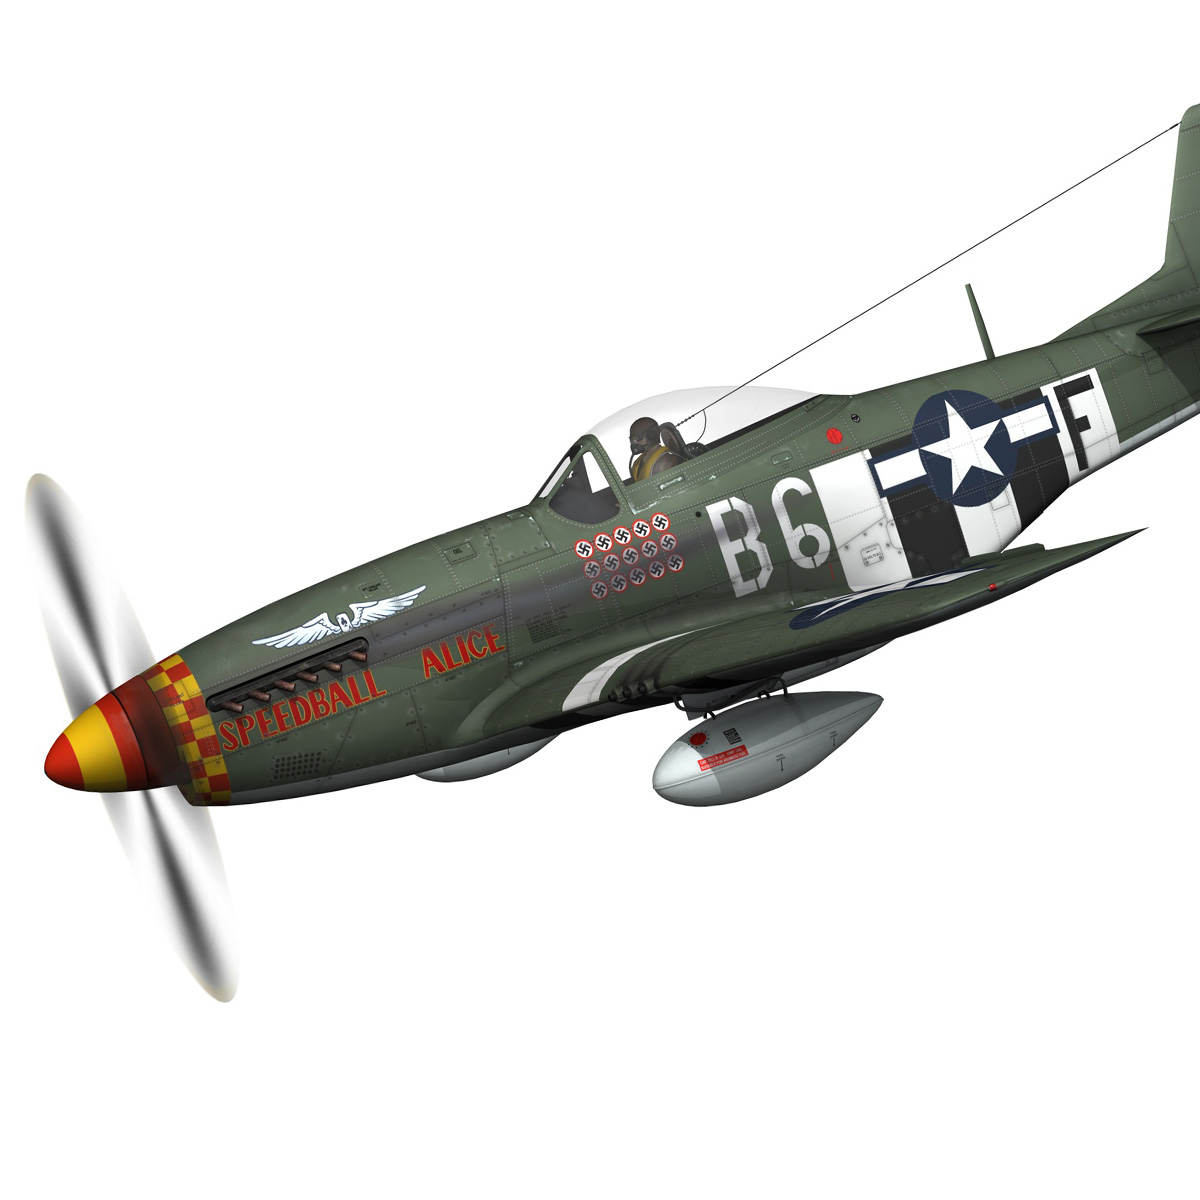 north american p-51d mustang – speedball alice 3d model fbx c4d lwo obj 280312